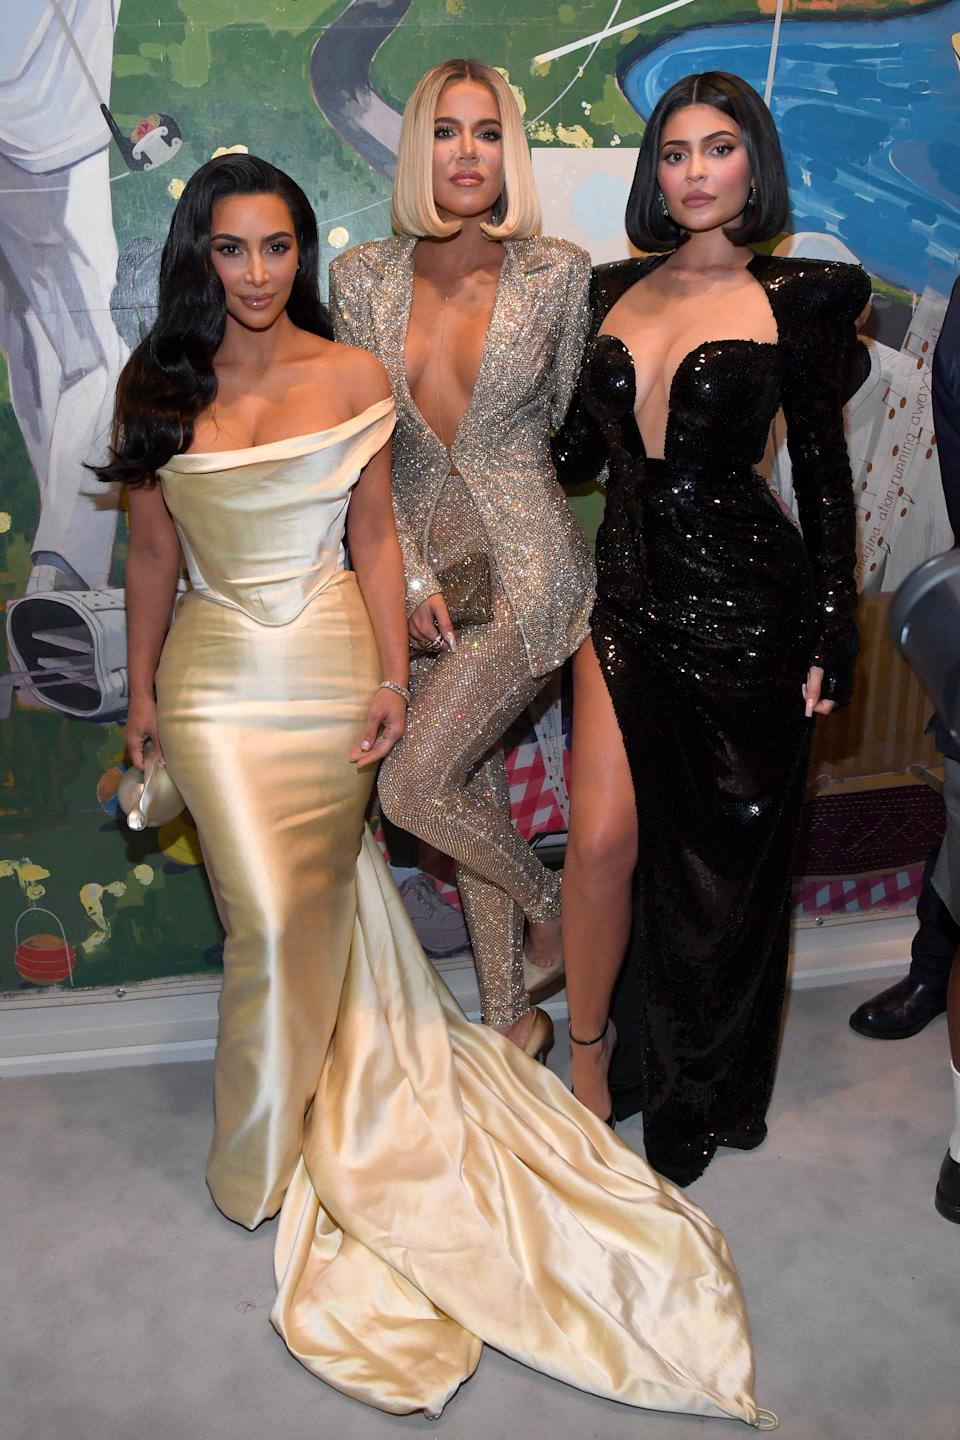 LOS ANGELES, CALIFORNIA - DECEMBER 14: (L-R) Kim Kardashian West, Khloe Kardashian, and Kylie Jenner attend Sean Combs 50th Birthday Bash presented by Ciroc Vodka on December 14, 2019 in Los Angeles, California. (Photo by Kevin Mazur/Getty Images for Sean Combs)